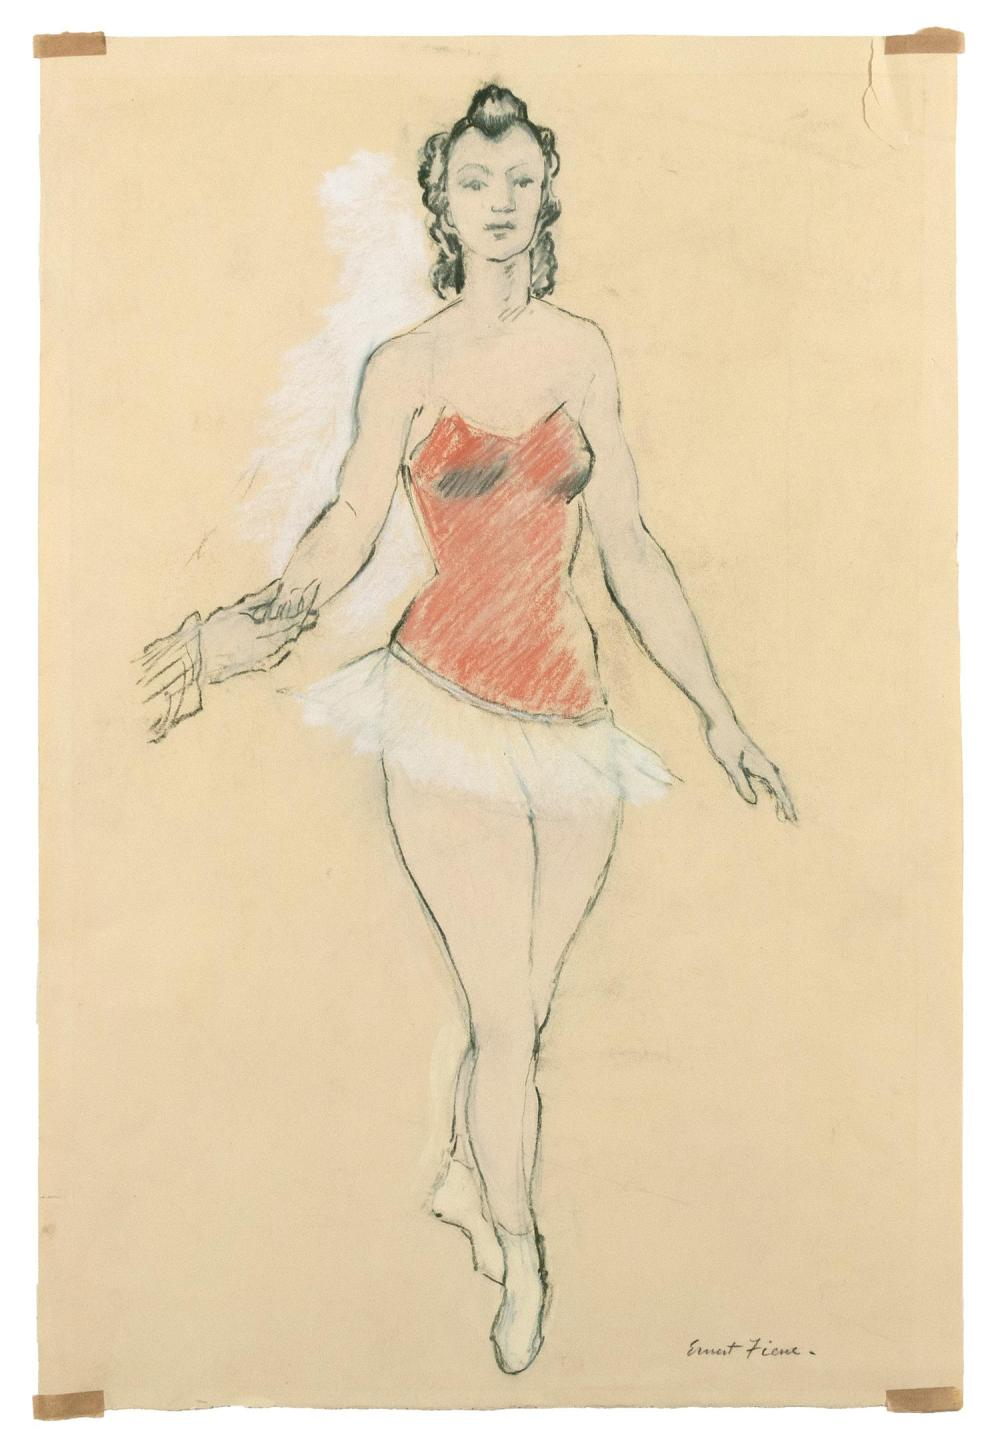 "ERNEST FIENE, New York/Germany, 1894-1965, Study of a ballerina., Charcoal and pastel, 20.25"" x 13.25"". Unframed."